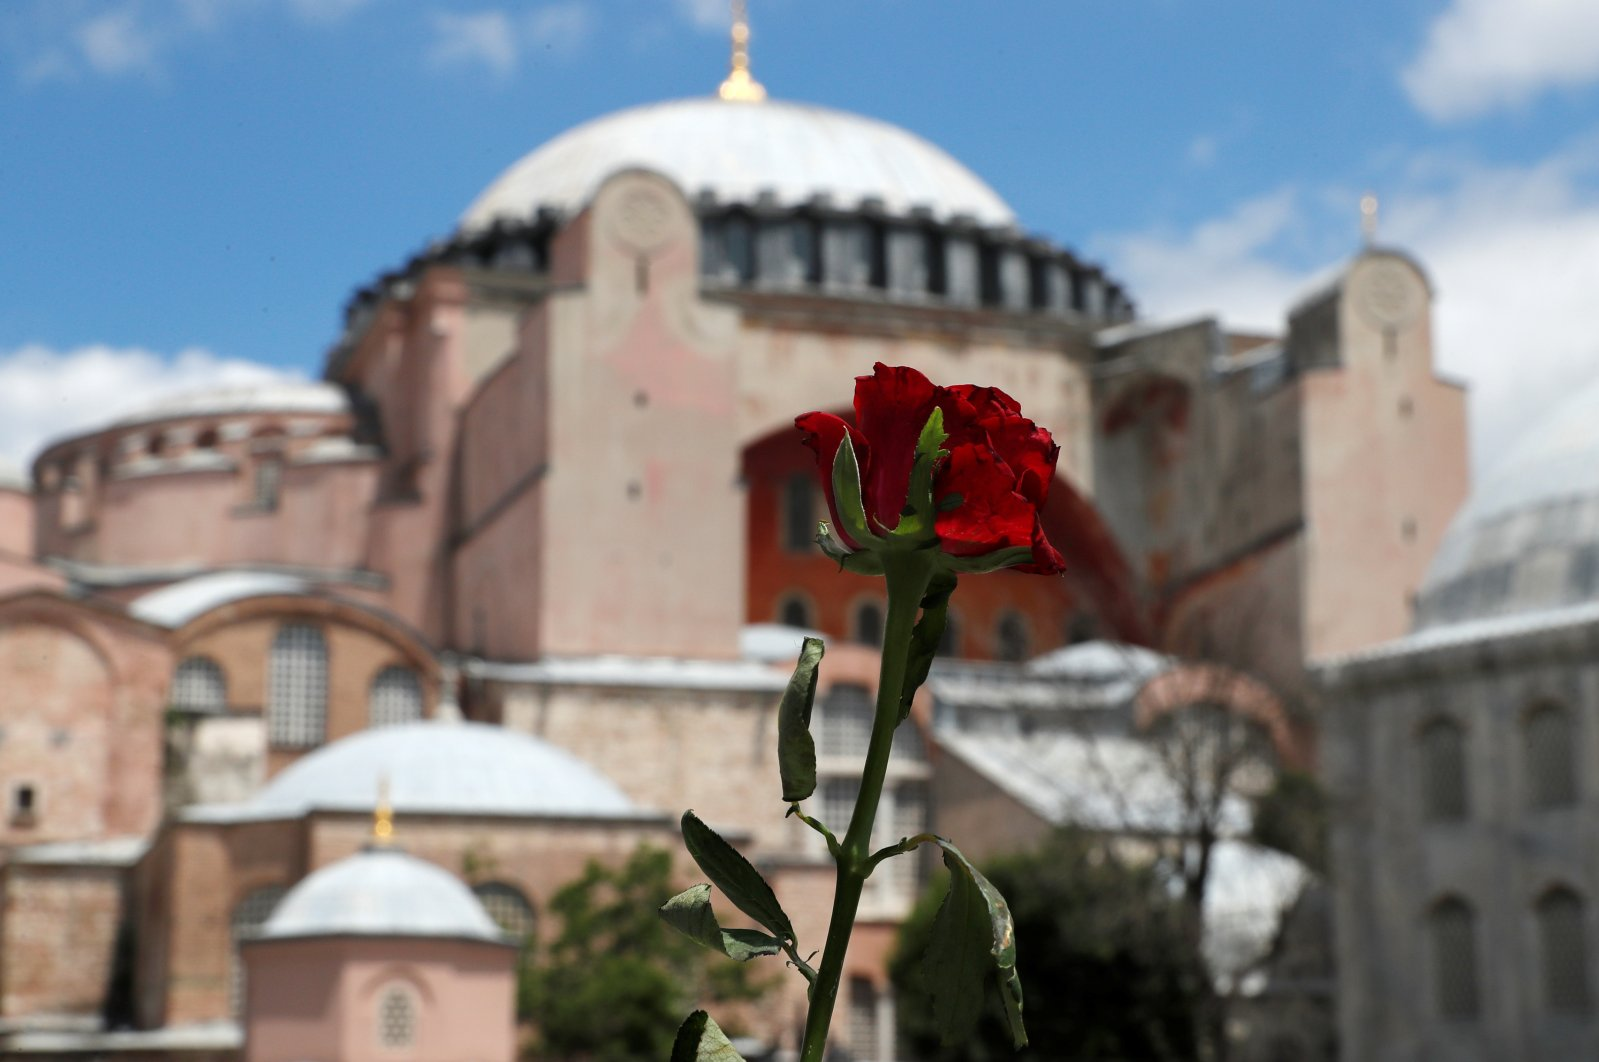 A red rose is attached to the security barriers in front of the Hagia Sophia in Istanbul, July 17, 2020. (REUTERS)